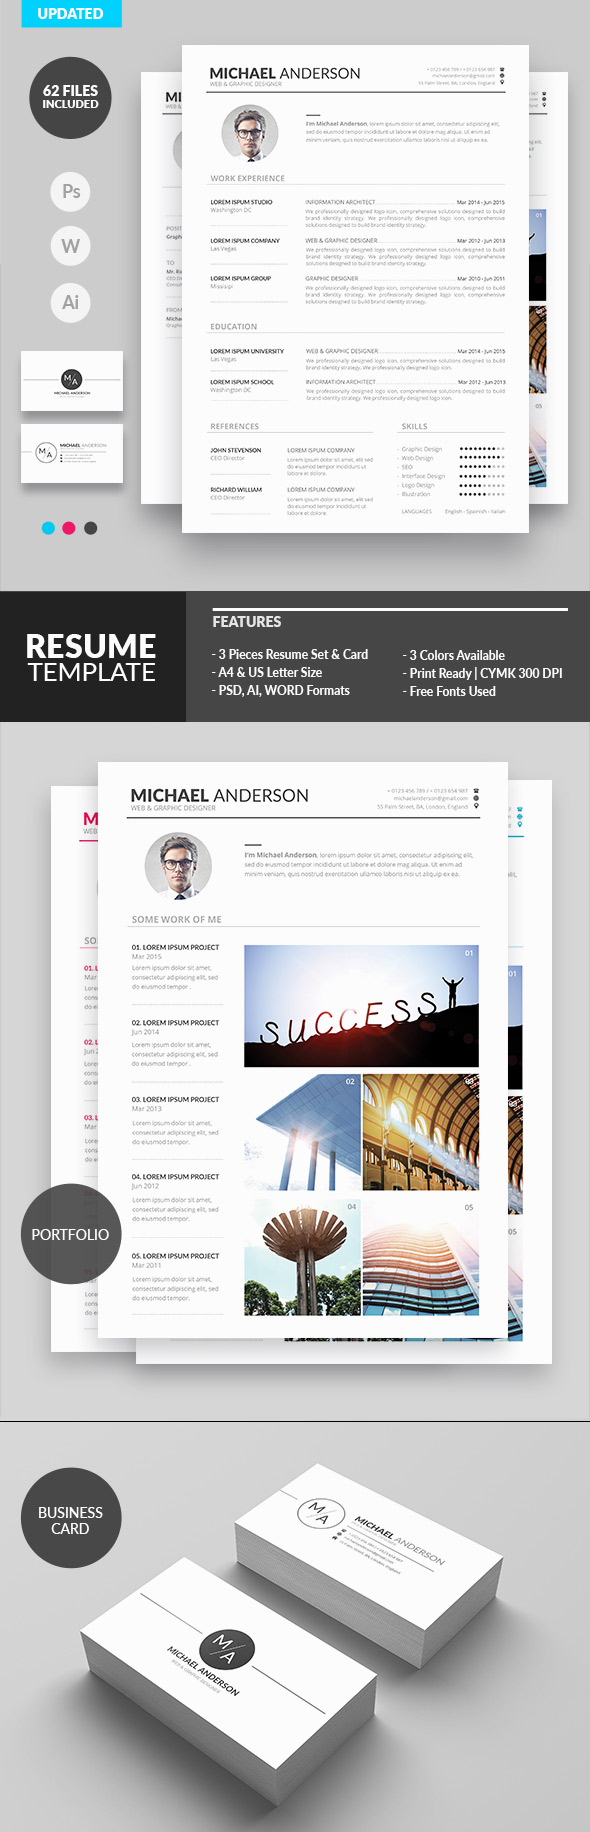 50 Best Minimal Resume Templates - 25